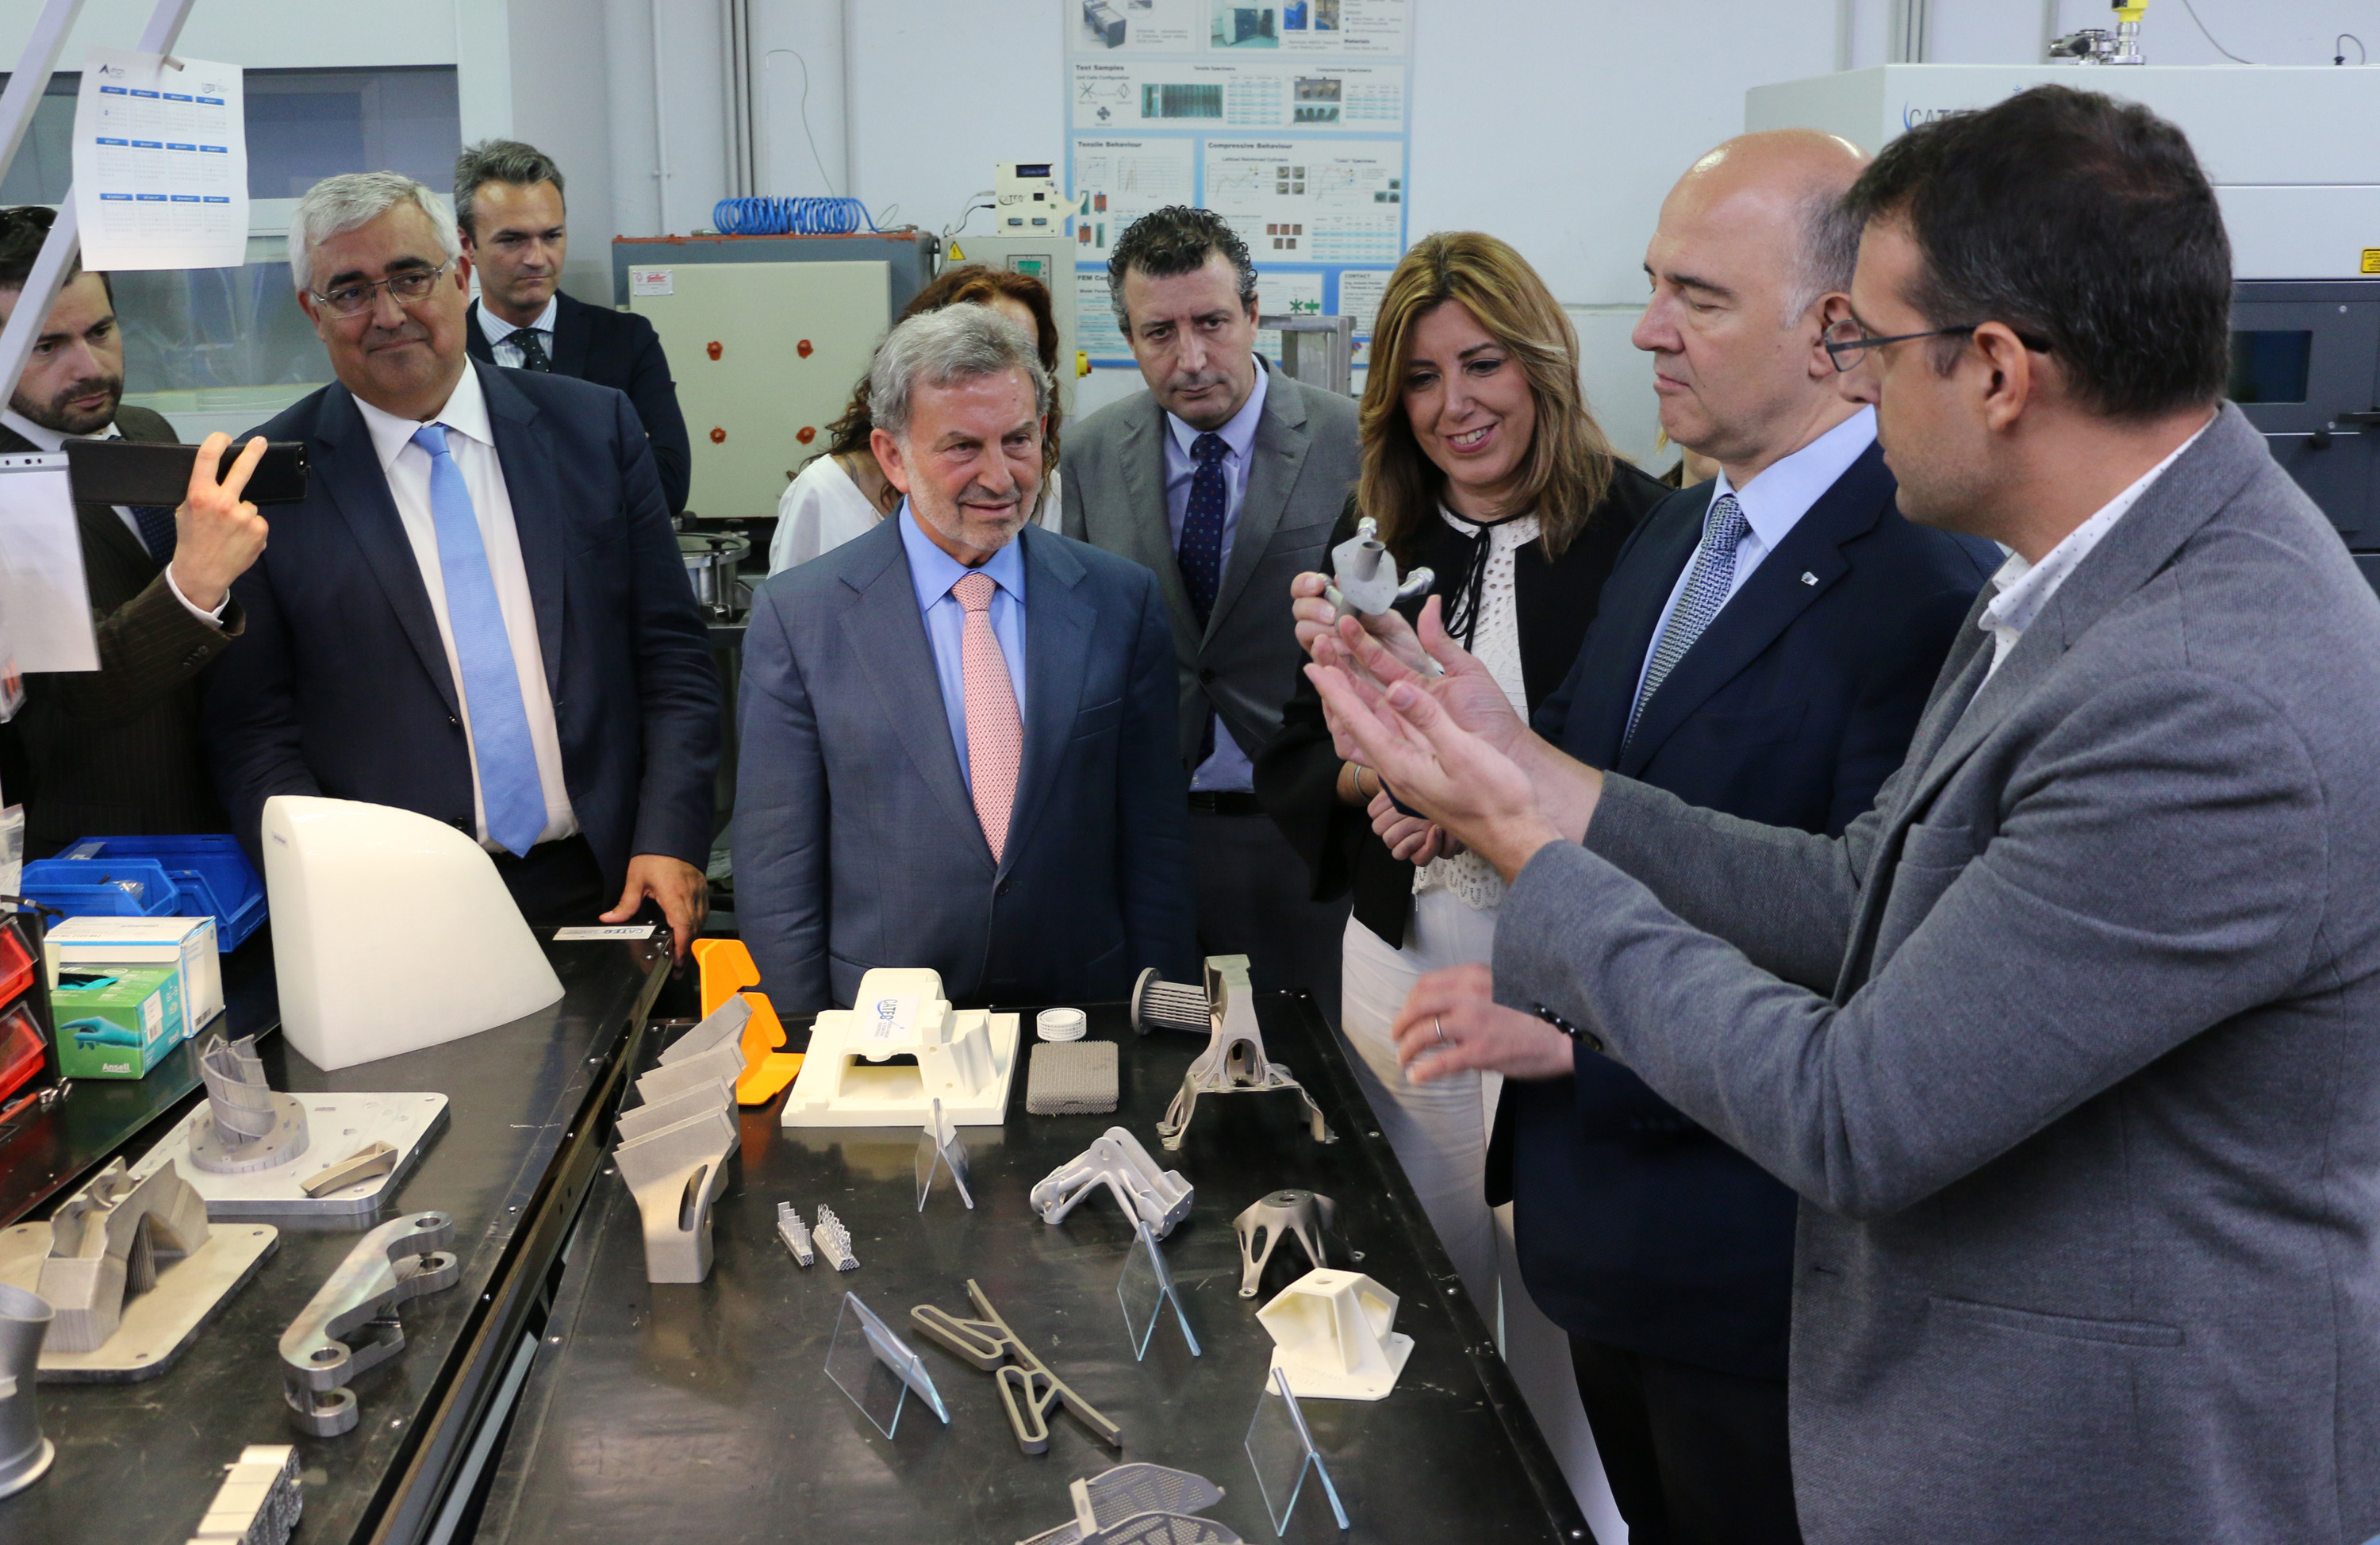 The Commissioner for Economic and Financial Affairs of the European Union, Pierre Moscovici, visited CATEC